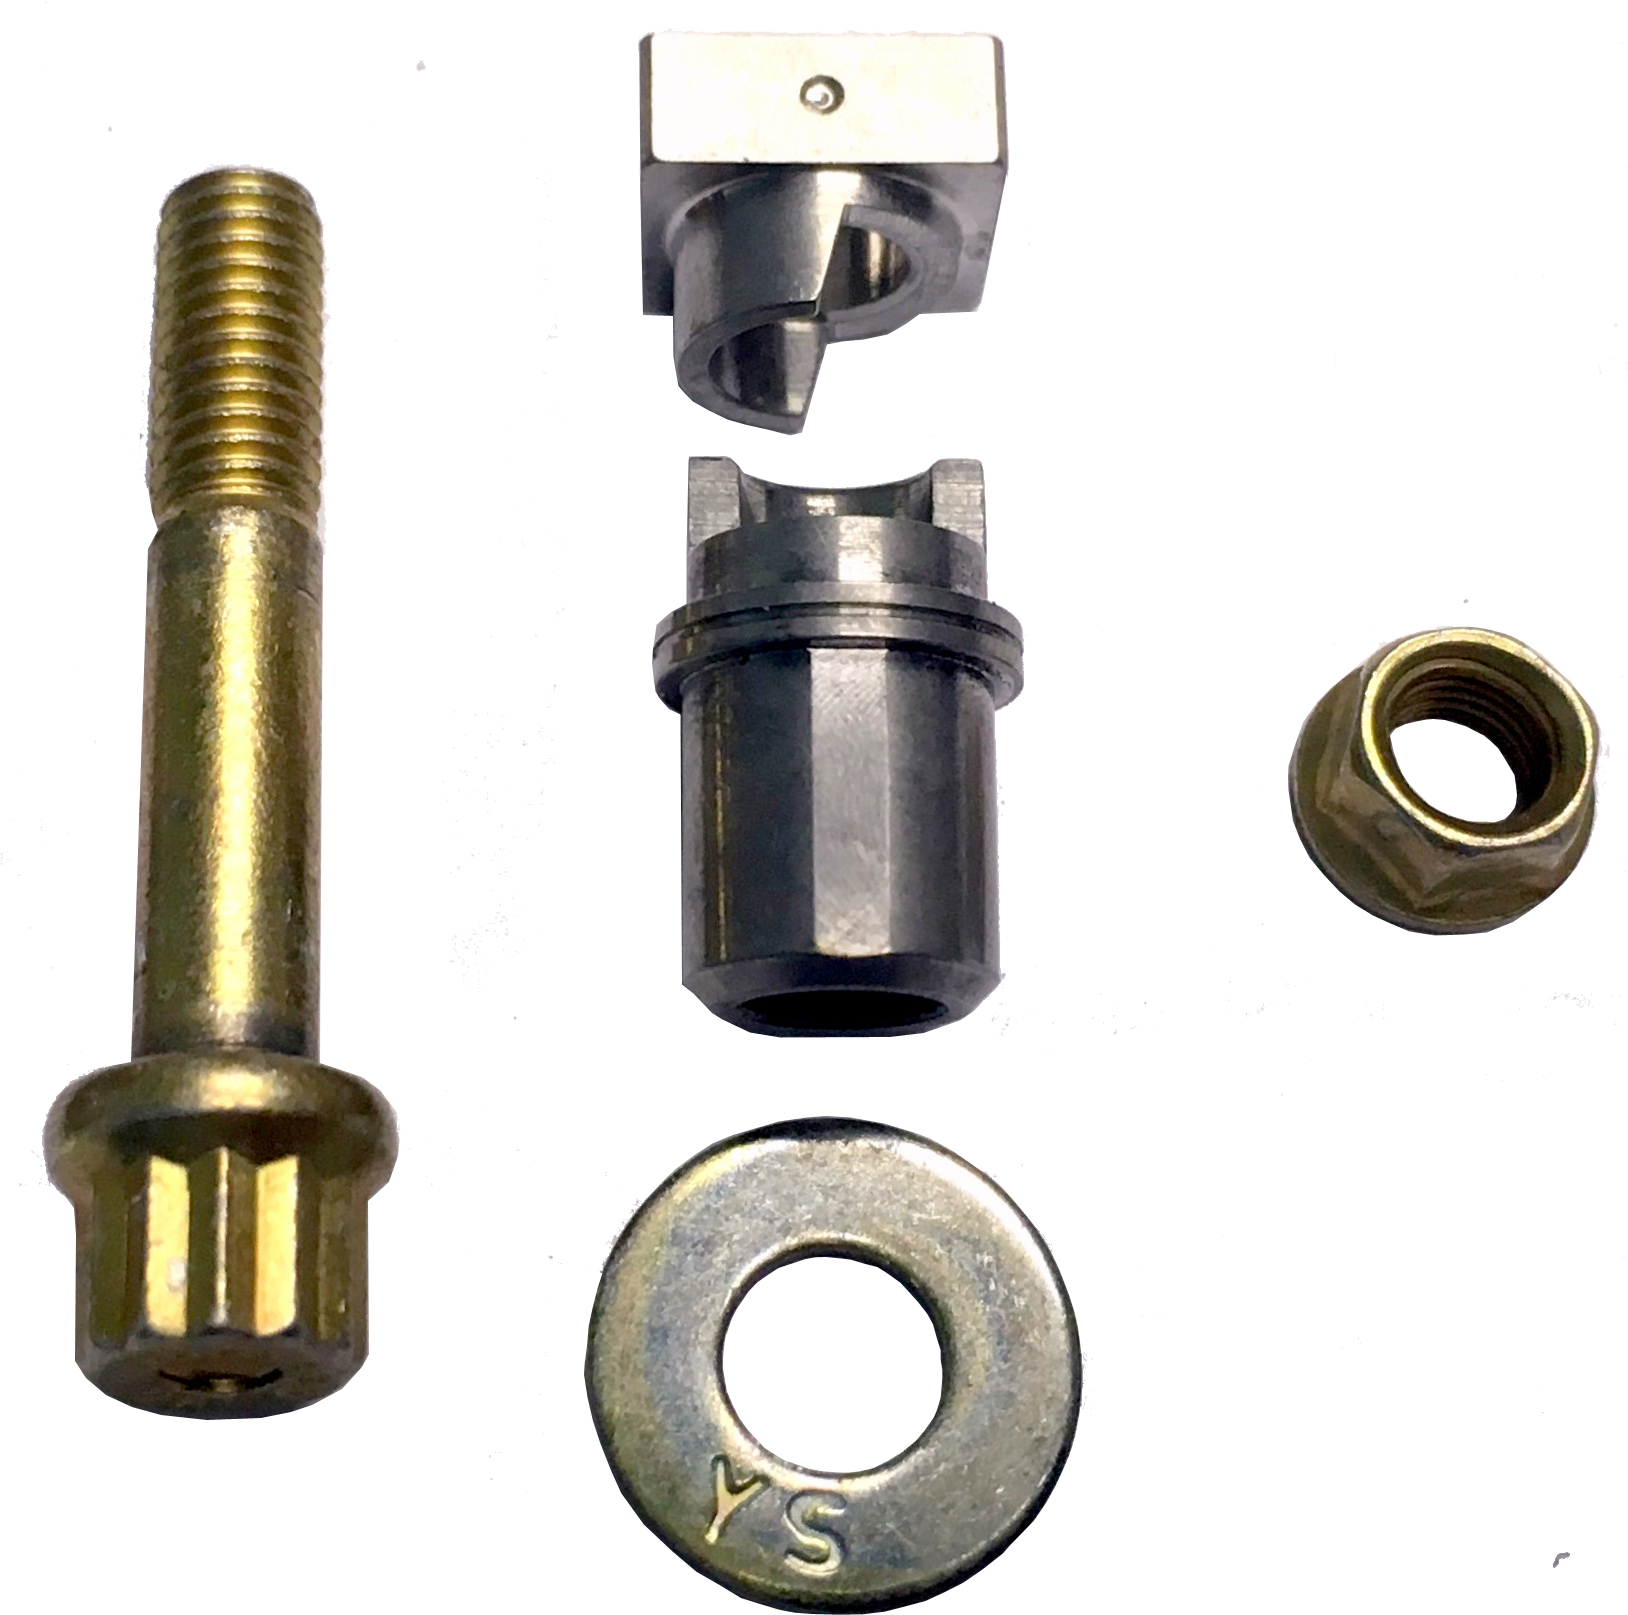 Exploded view of StopTech Wedge Lock Hardware